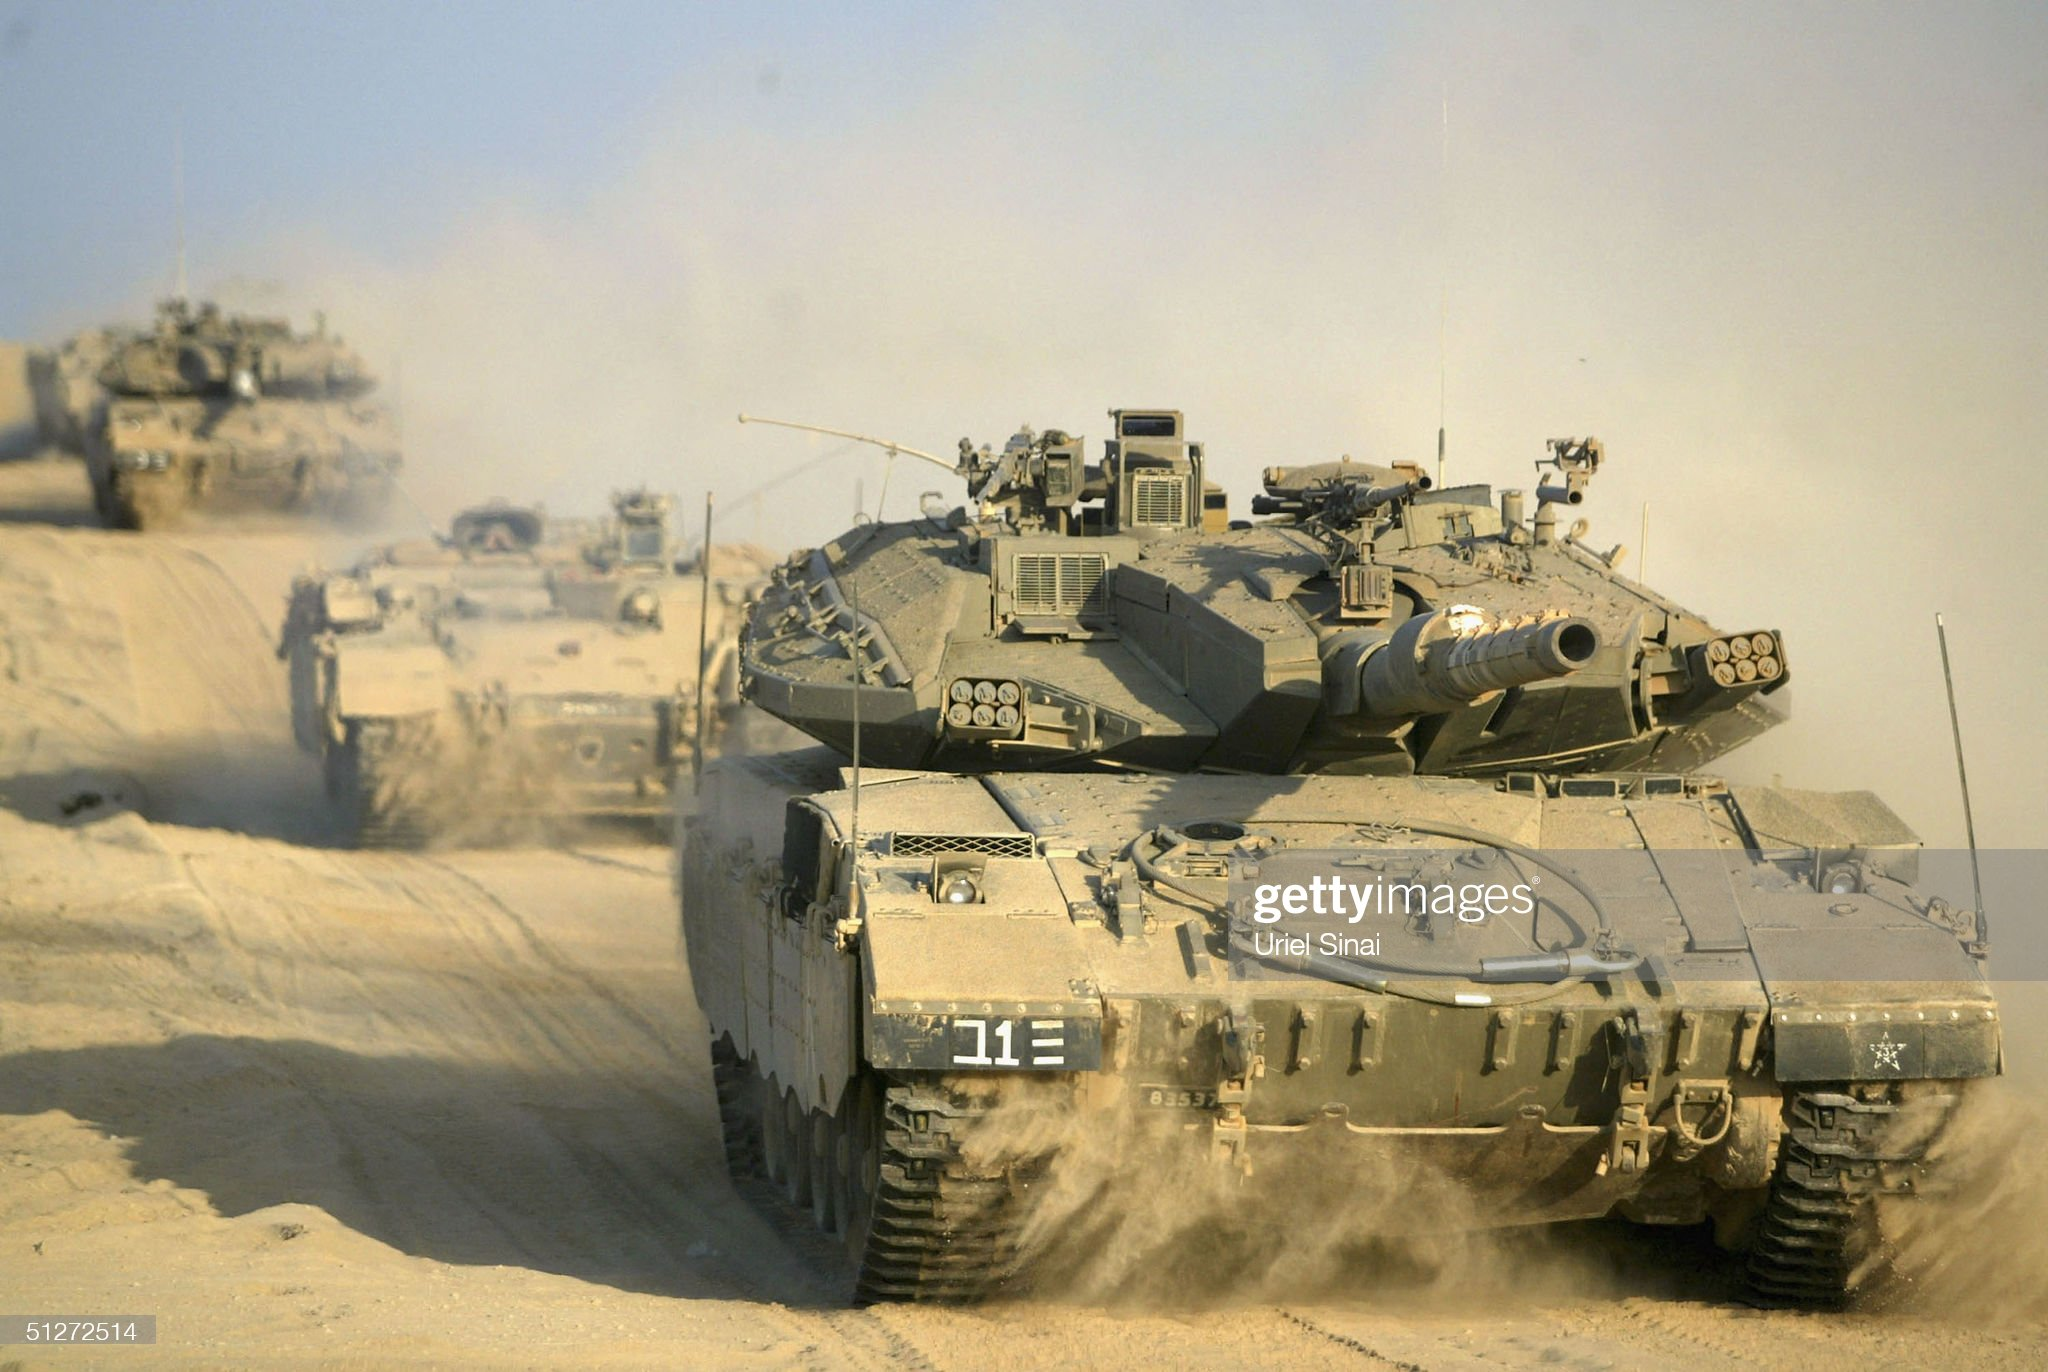 https://media.gettyimages.com/photos/israeli-army-vehicles-drive-from-israel-into-gaza-on-september-8-2004-picture-id51272514?s=2048x2048